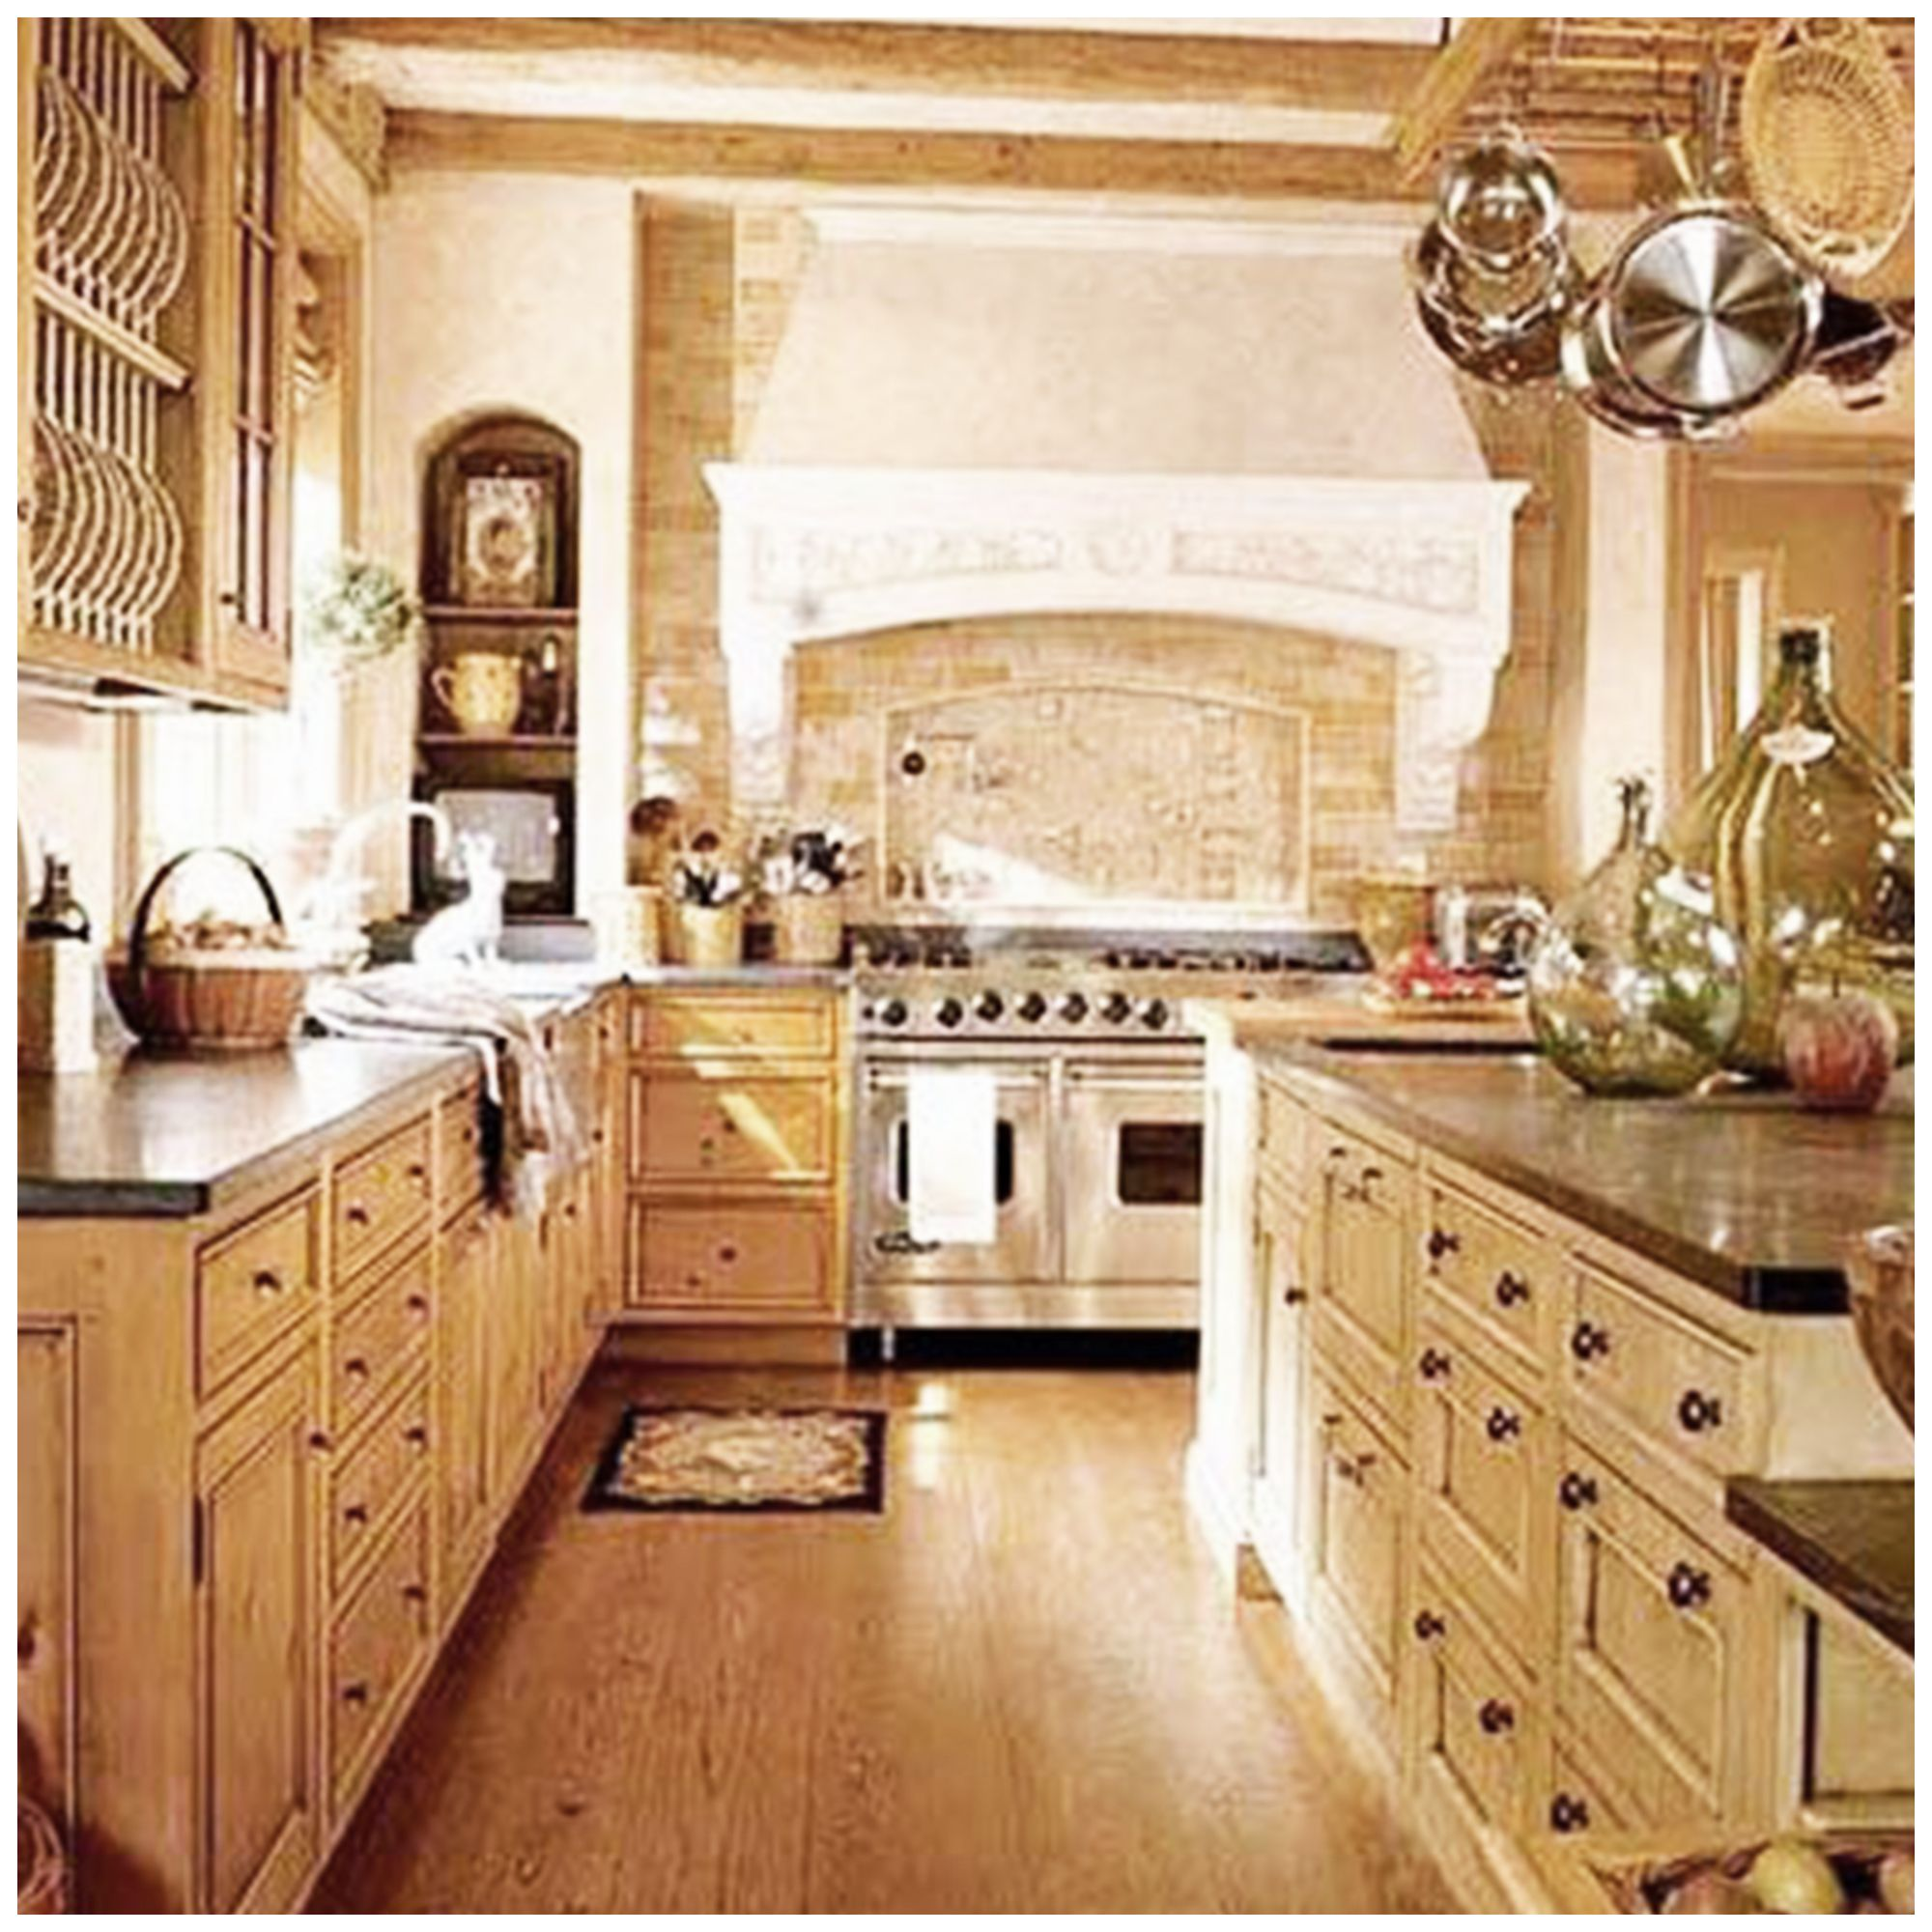 20 Romantic Italian Kitchen Design Ideas You Ll Probably Like In 2020 Italian Style Kitchens Tuscan Kitchen Tuscan Decorating